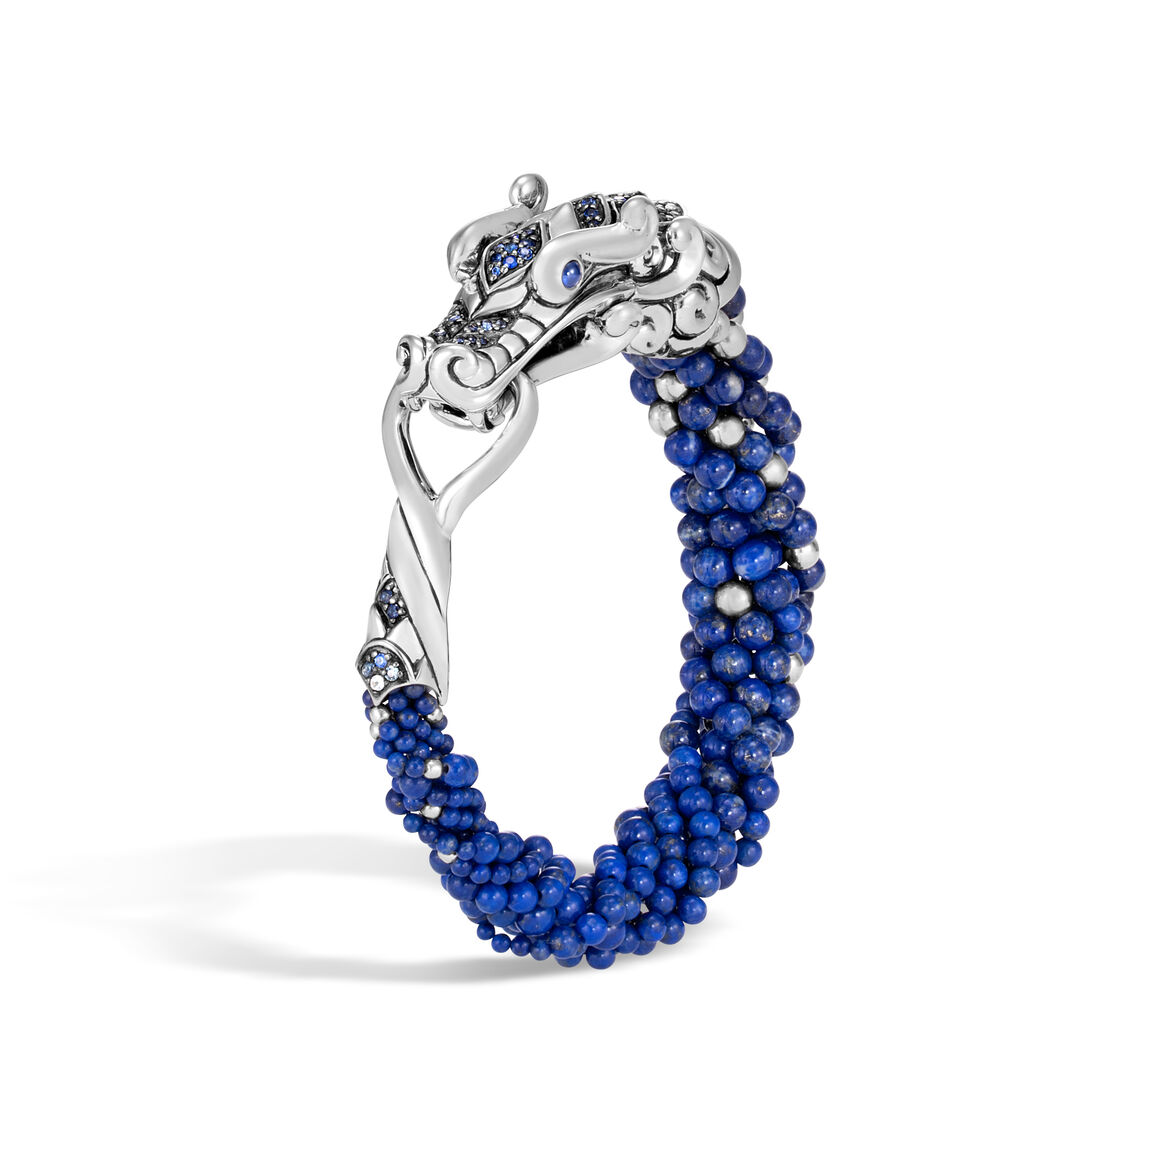 Legends Naga Multi Row Bracelet in Silver, Gemstone